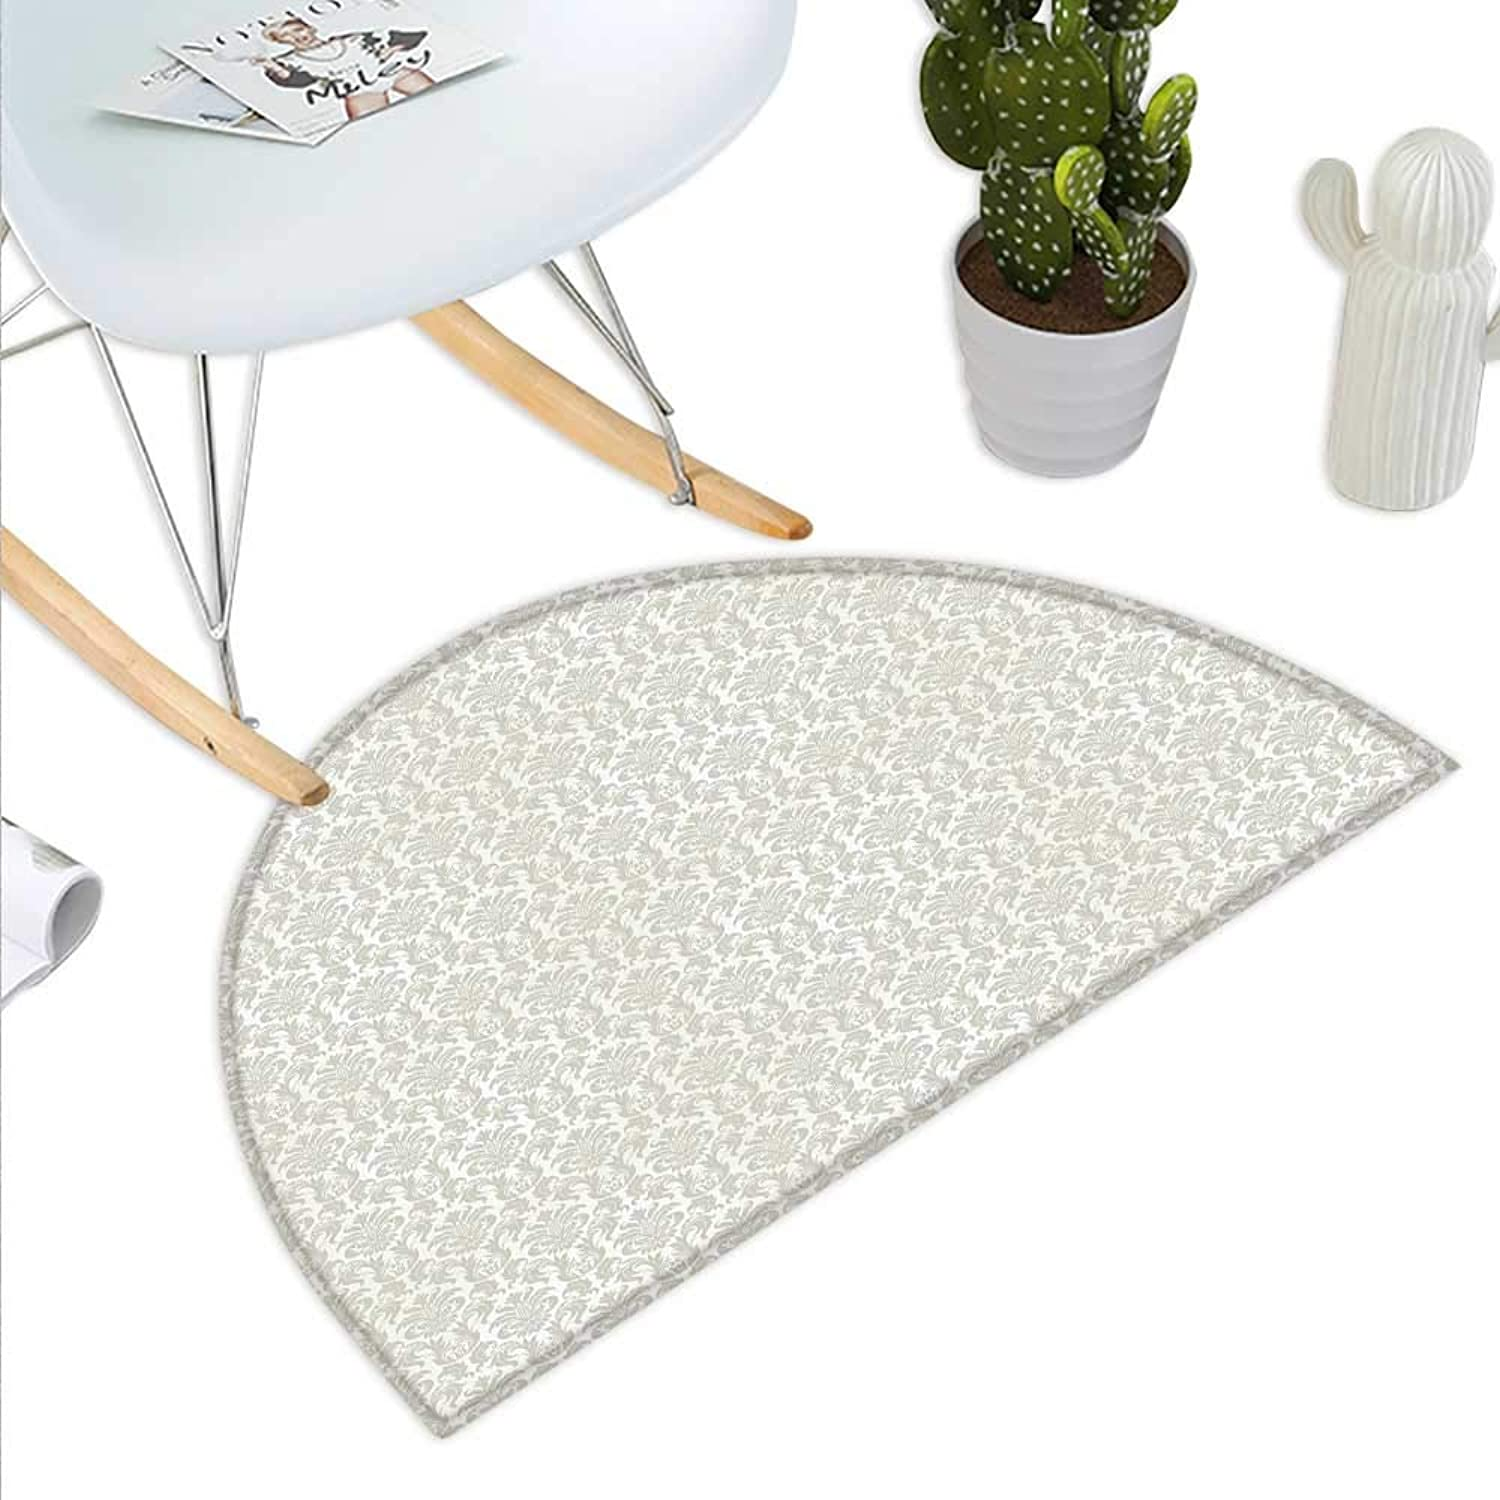 Damask Semicircle Doormat Abstract Floral Pattern Wedding Inspired Soft colord Design Complex Asian Motifs Halfmoon doormats H 35.4  xD 53.1  Cream Beige